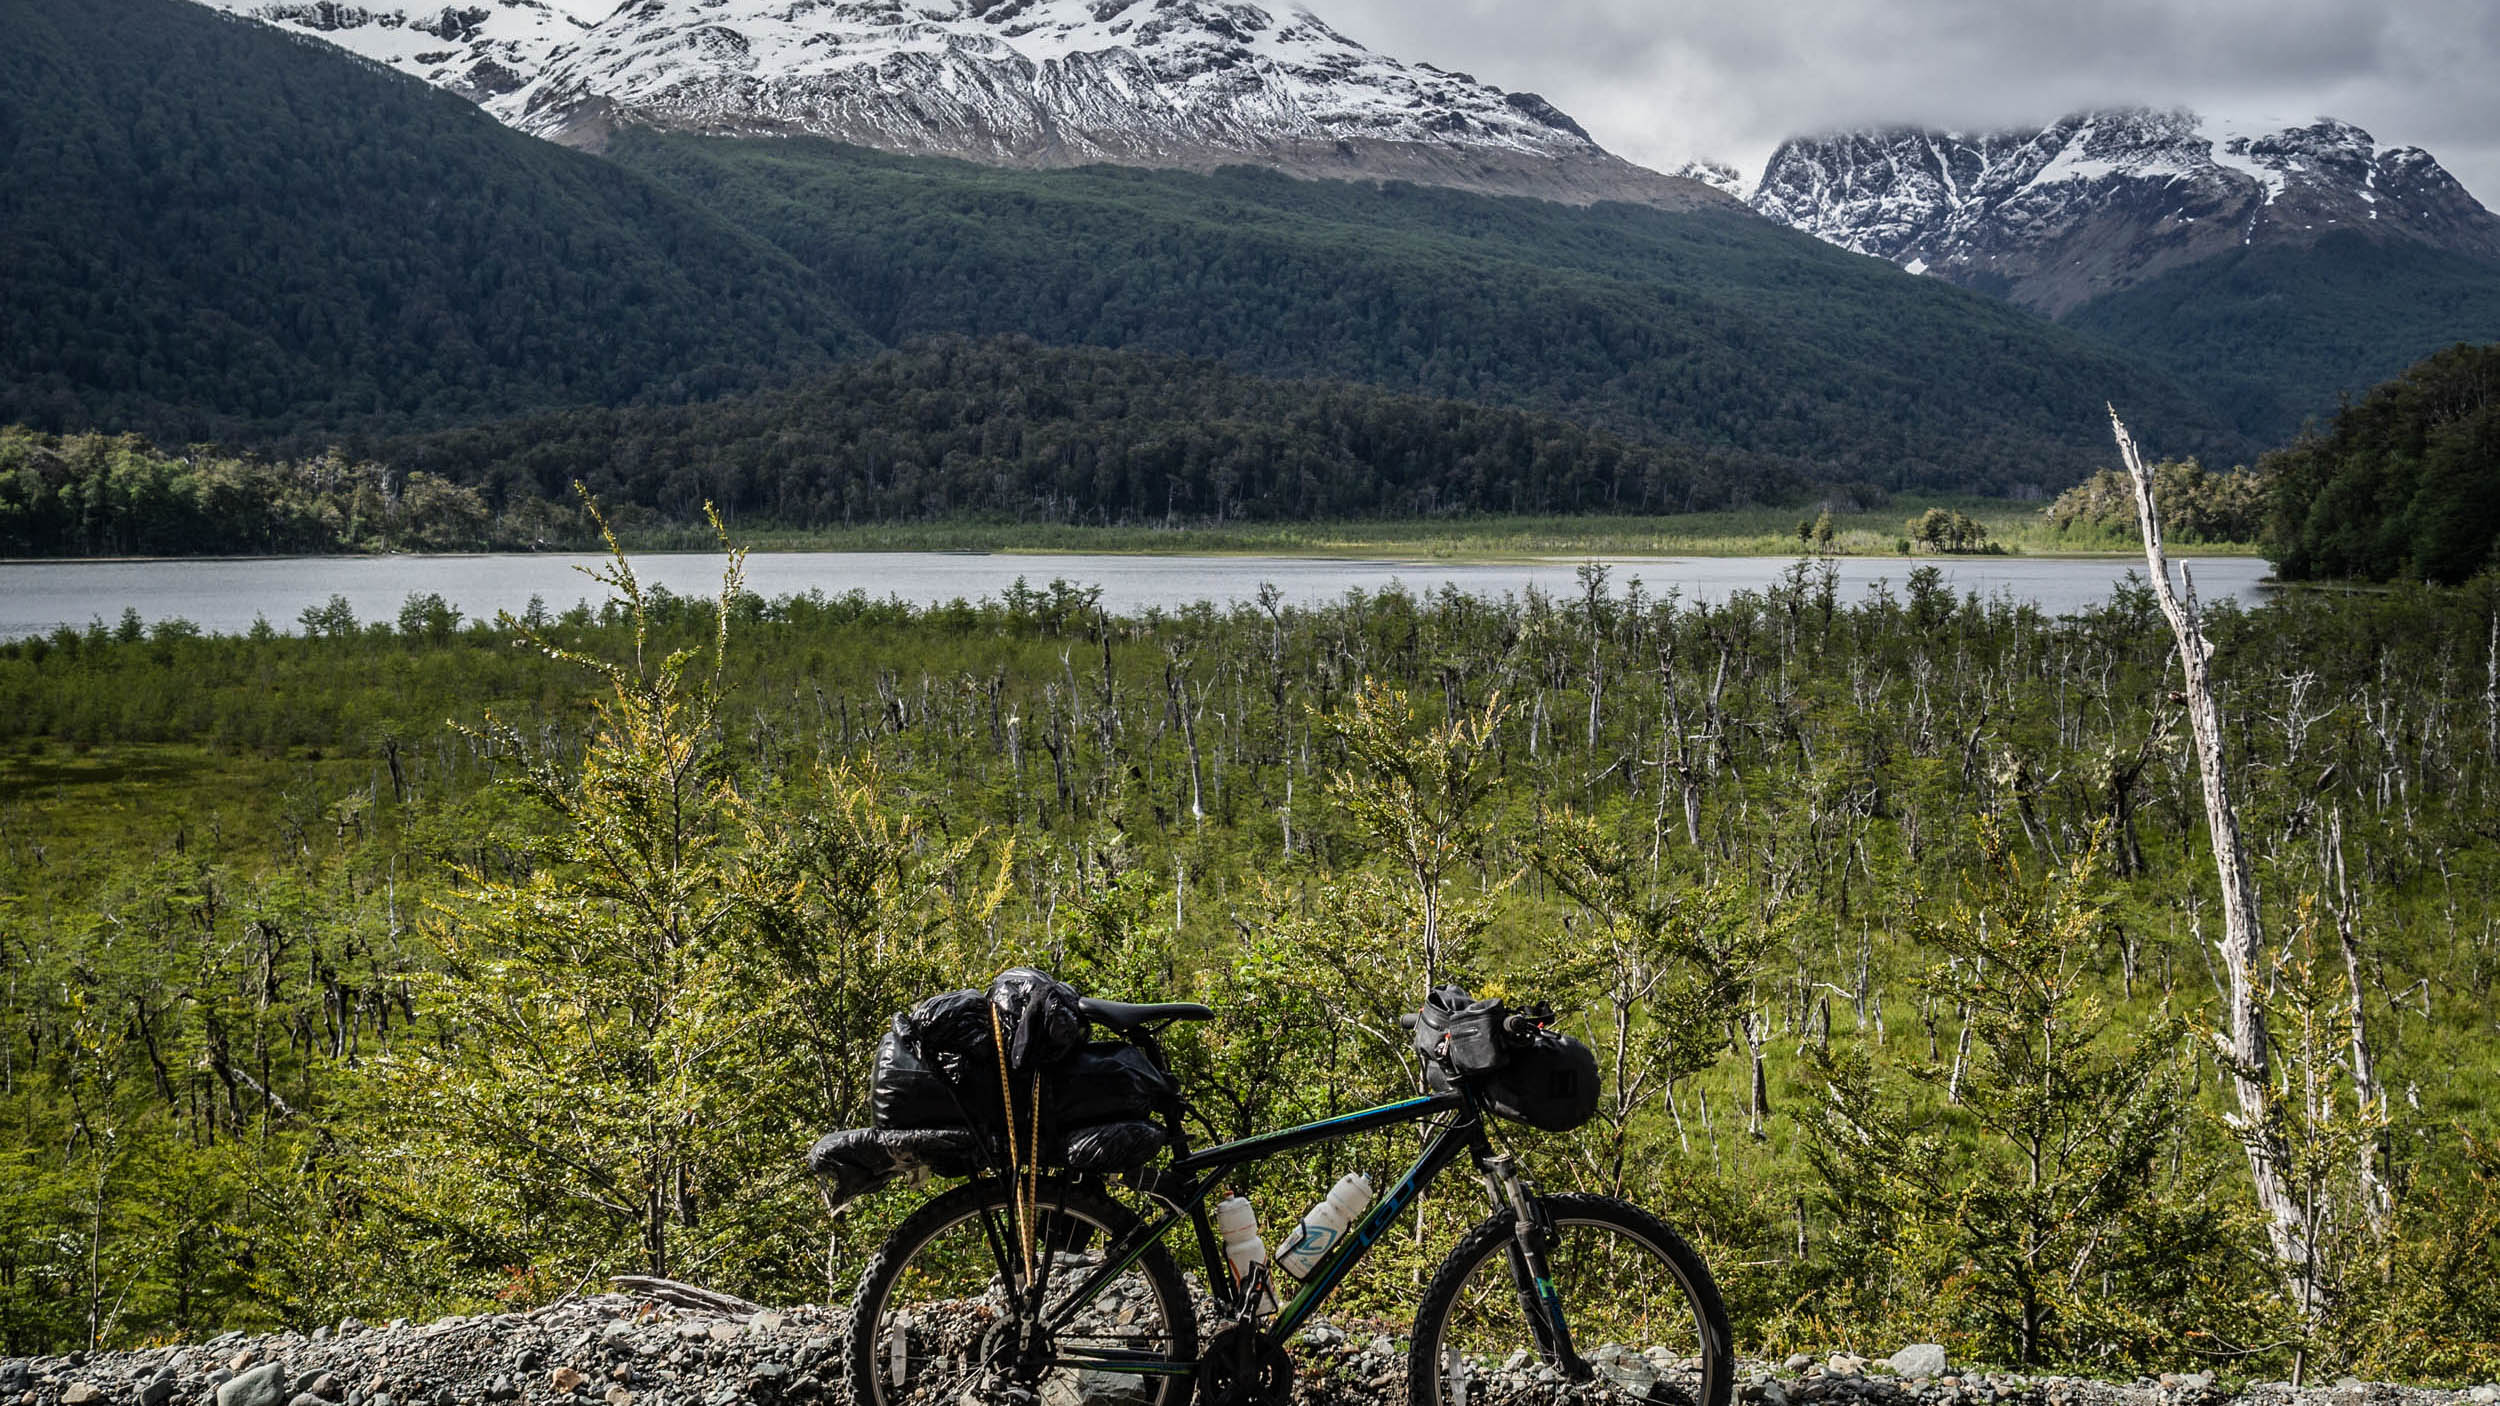 Cycling at the end of the World